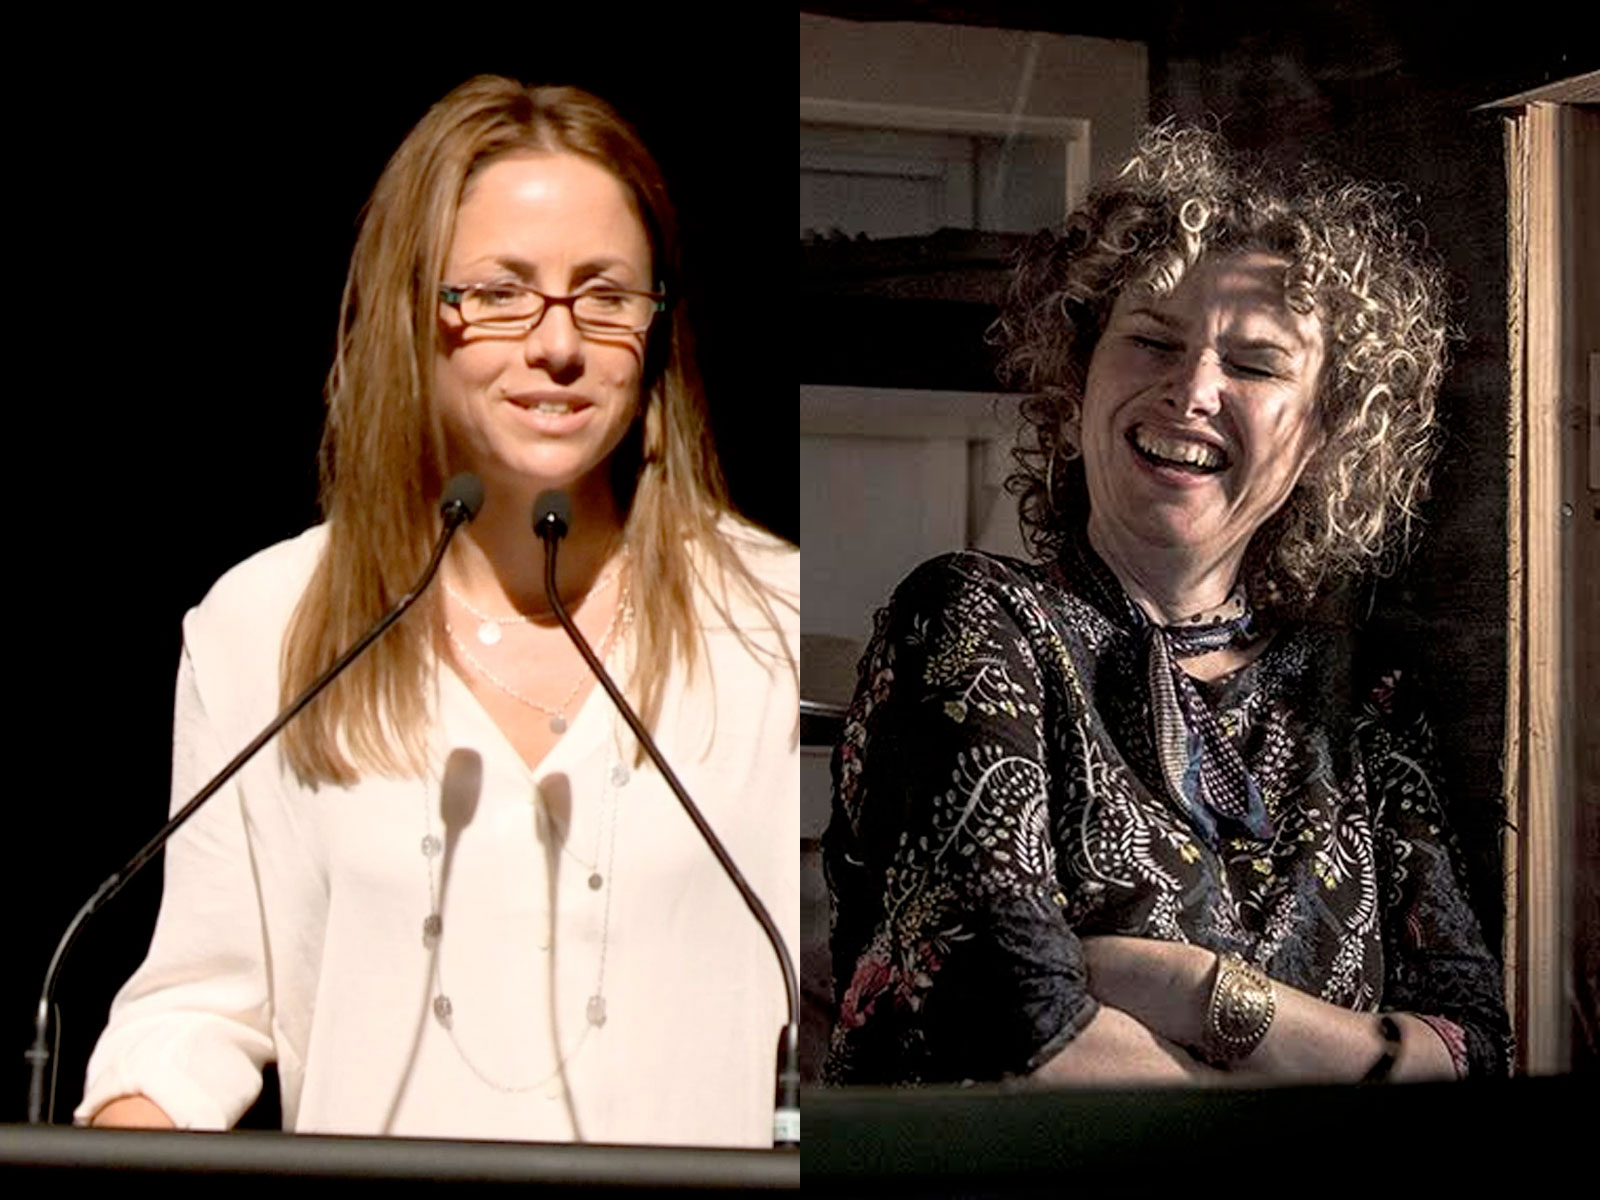 Left: Clare Wright delivering her speech. Right: Suzannah Espie during the recording of 'I'm Sorry'.